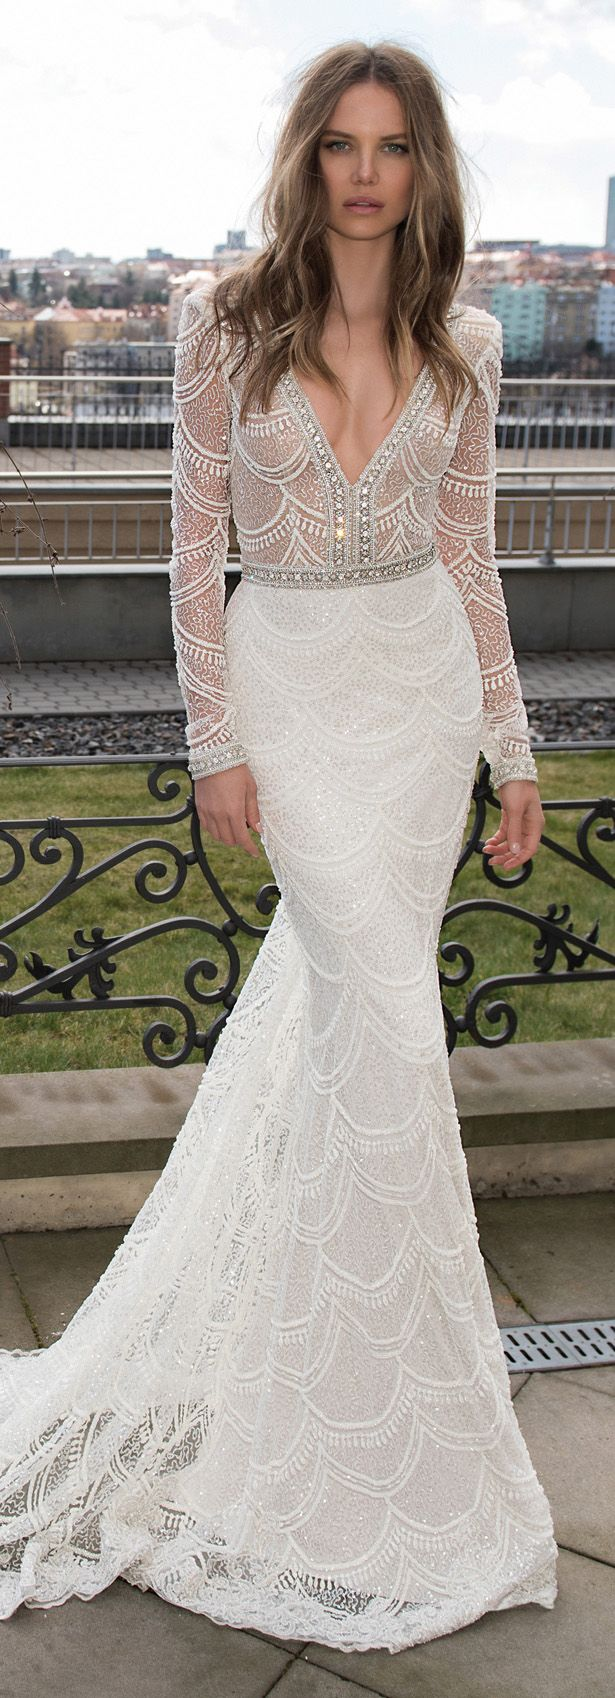 Wedding Dress by Berta Bridal Fall 2015 this is different than what I usually like, but it's gorgeous